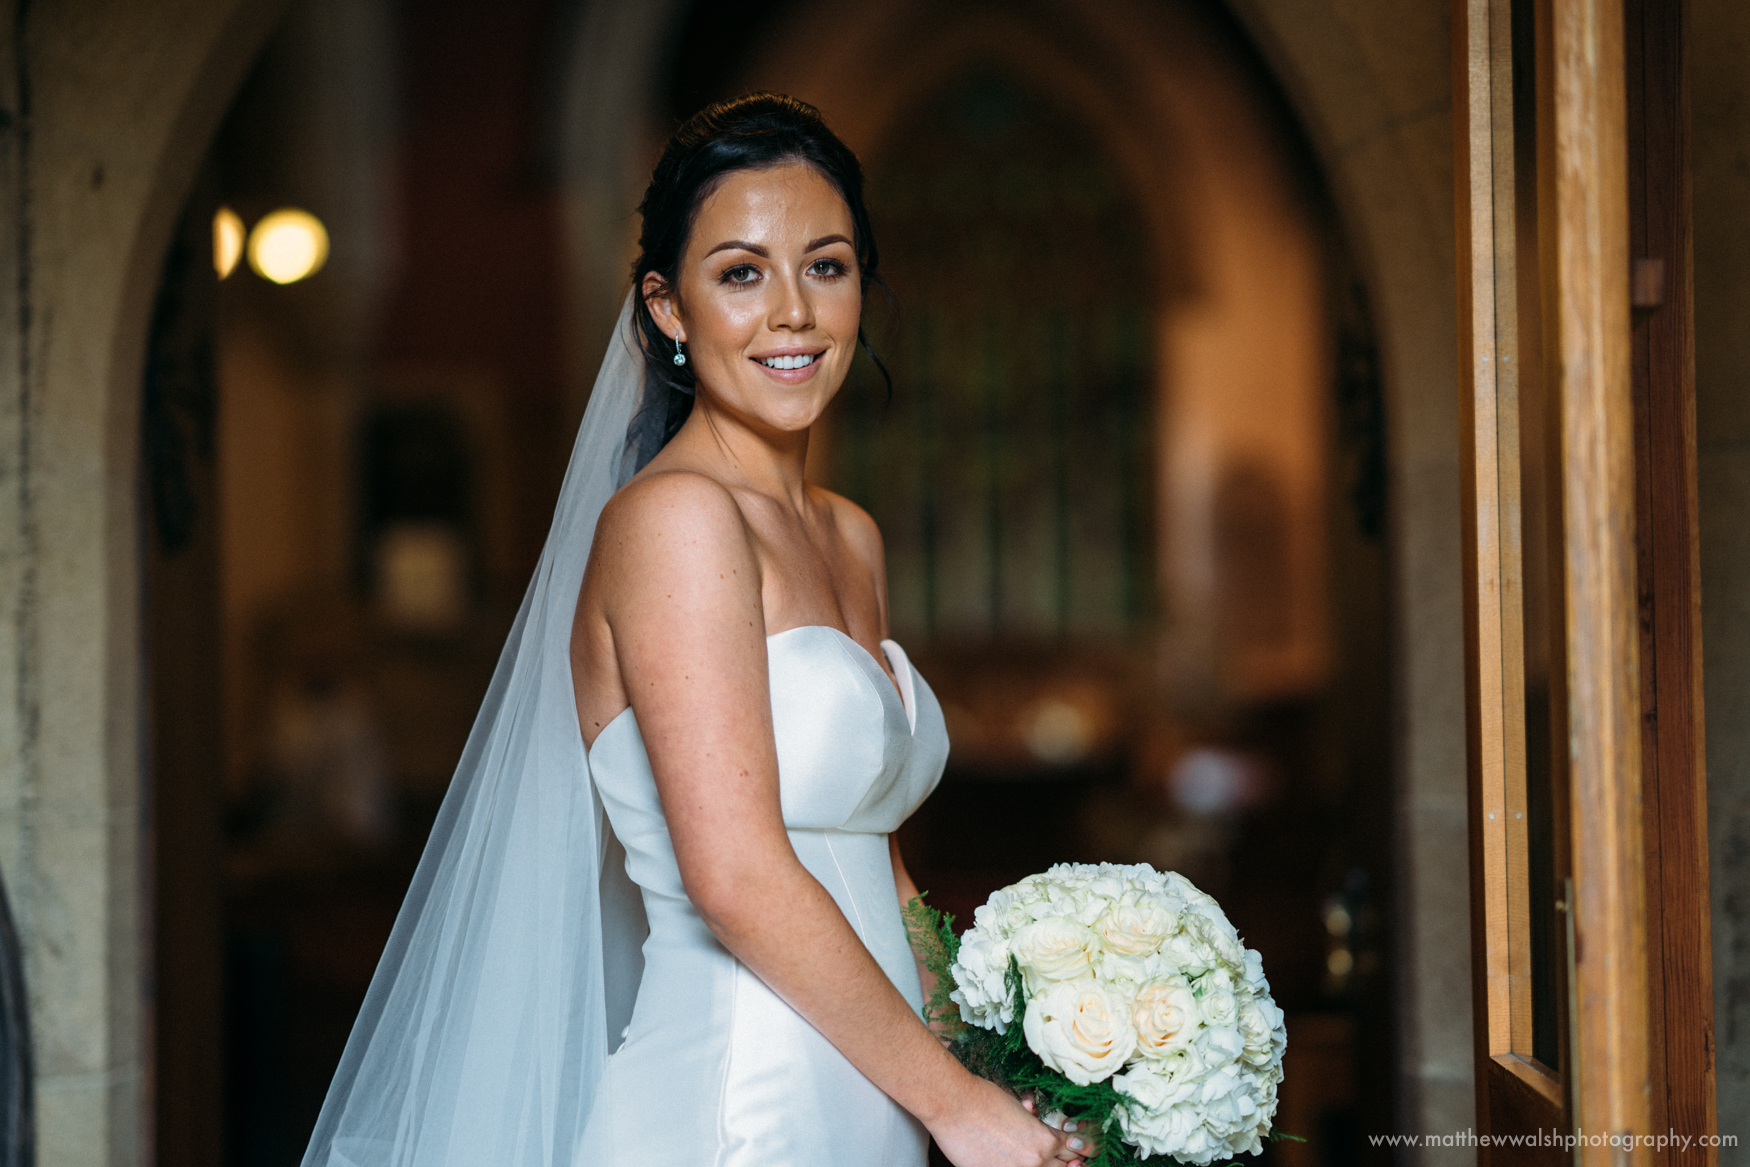 The bride poses for a quick photograph in the church doorway